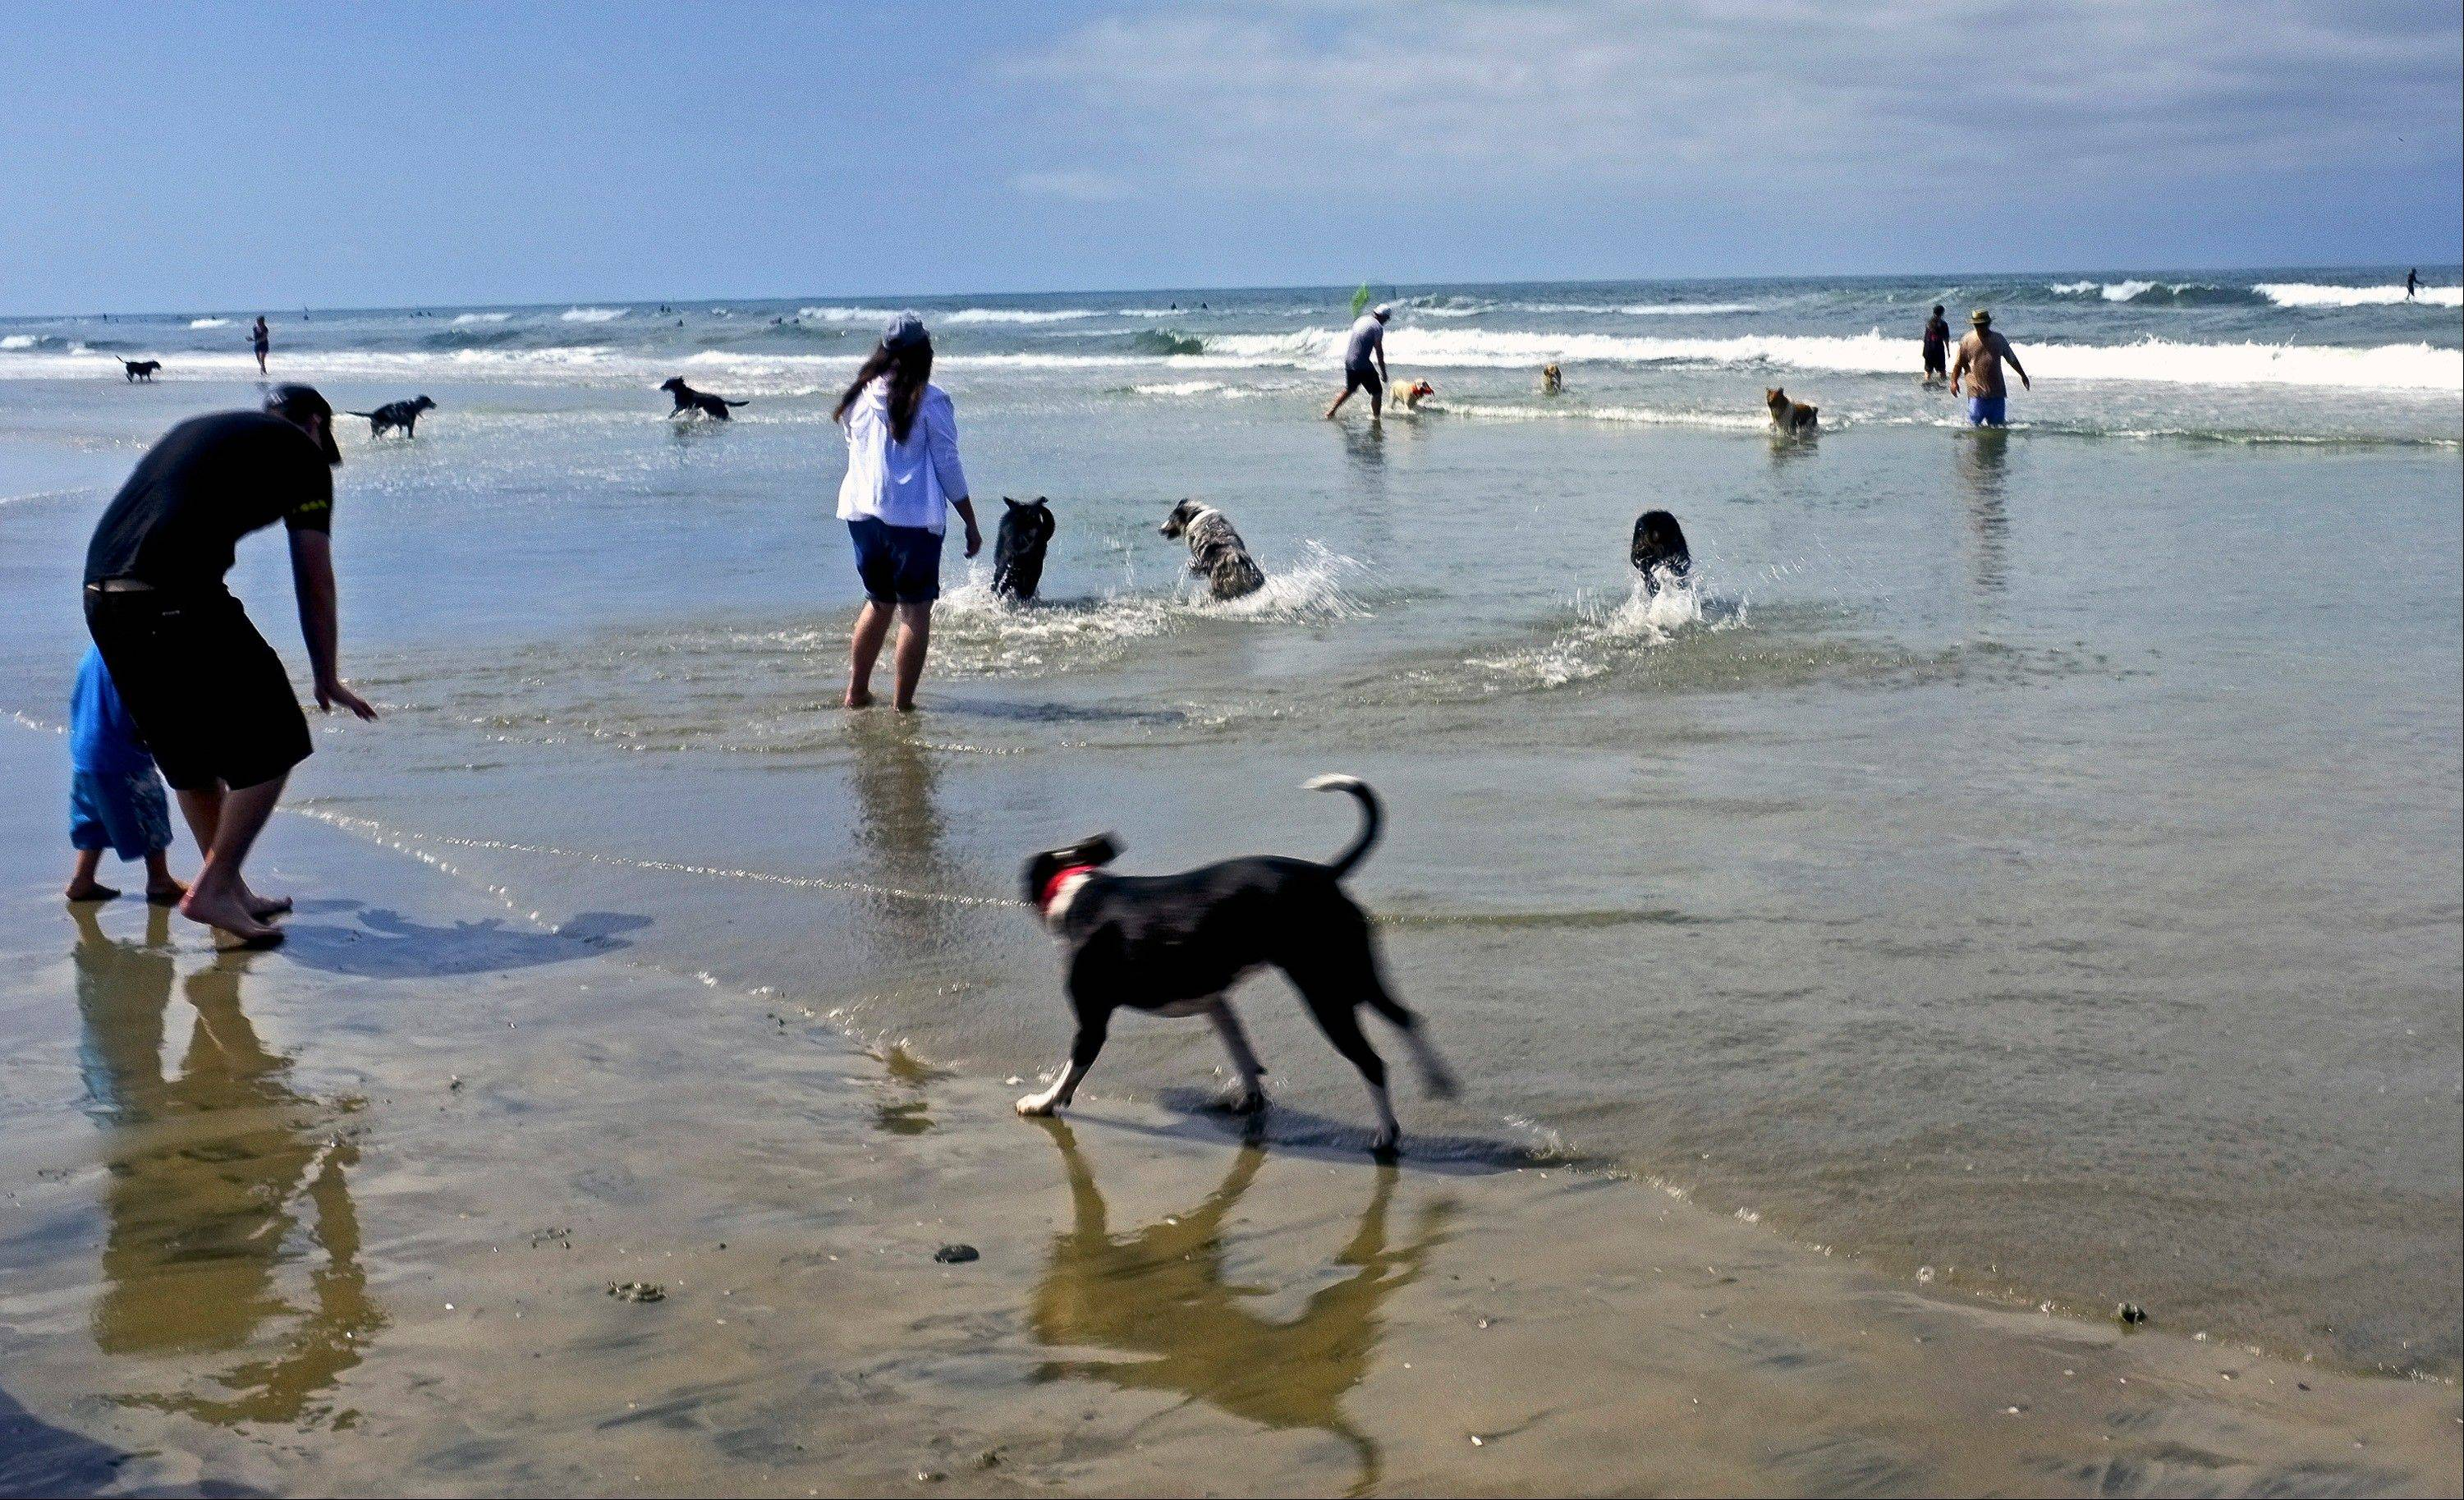 Dogs and their owners play in the surf at the Huntington Dog Beach in Huntington Beach, Calif. Huntington, also known as Surf City USA, is one of the best-known dog surfing beaches in the world.